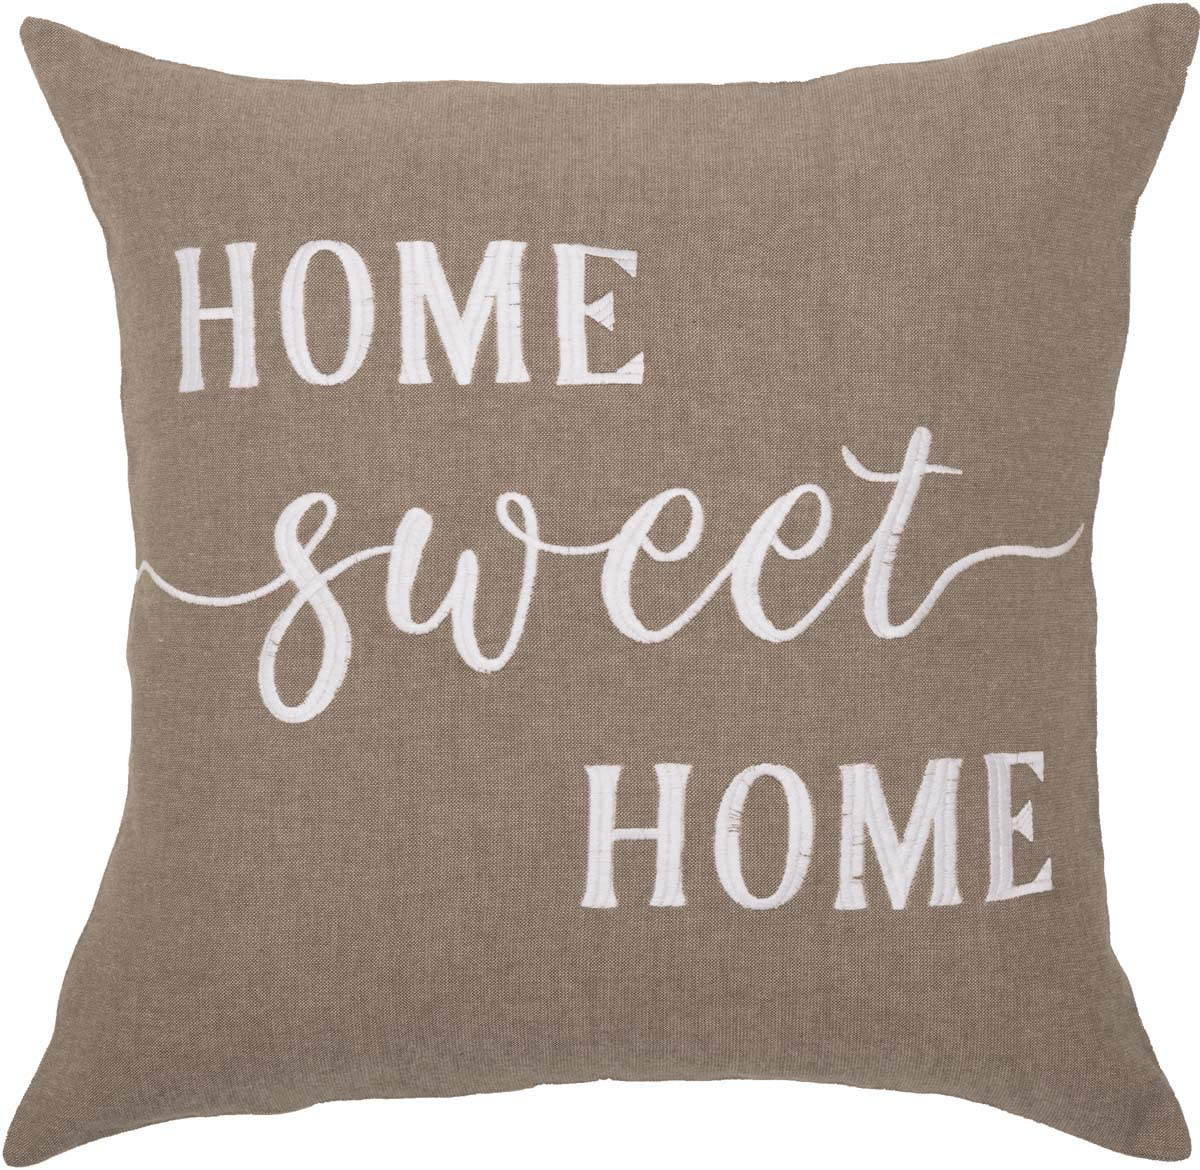 "Home Sweet Home Throw Pillow Cover, 20"" x 20"", Farmhouse Style Accent Pillow with Embroidered Lettering"